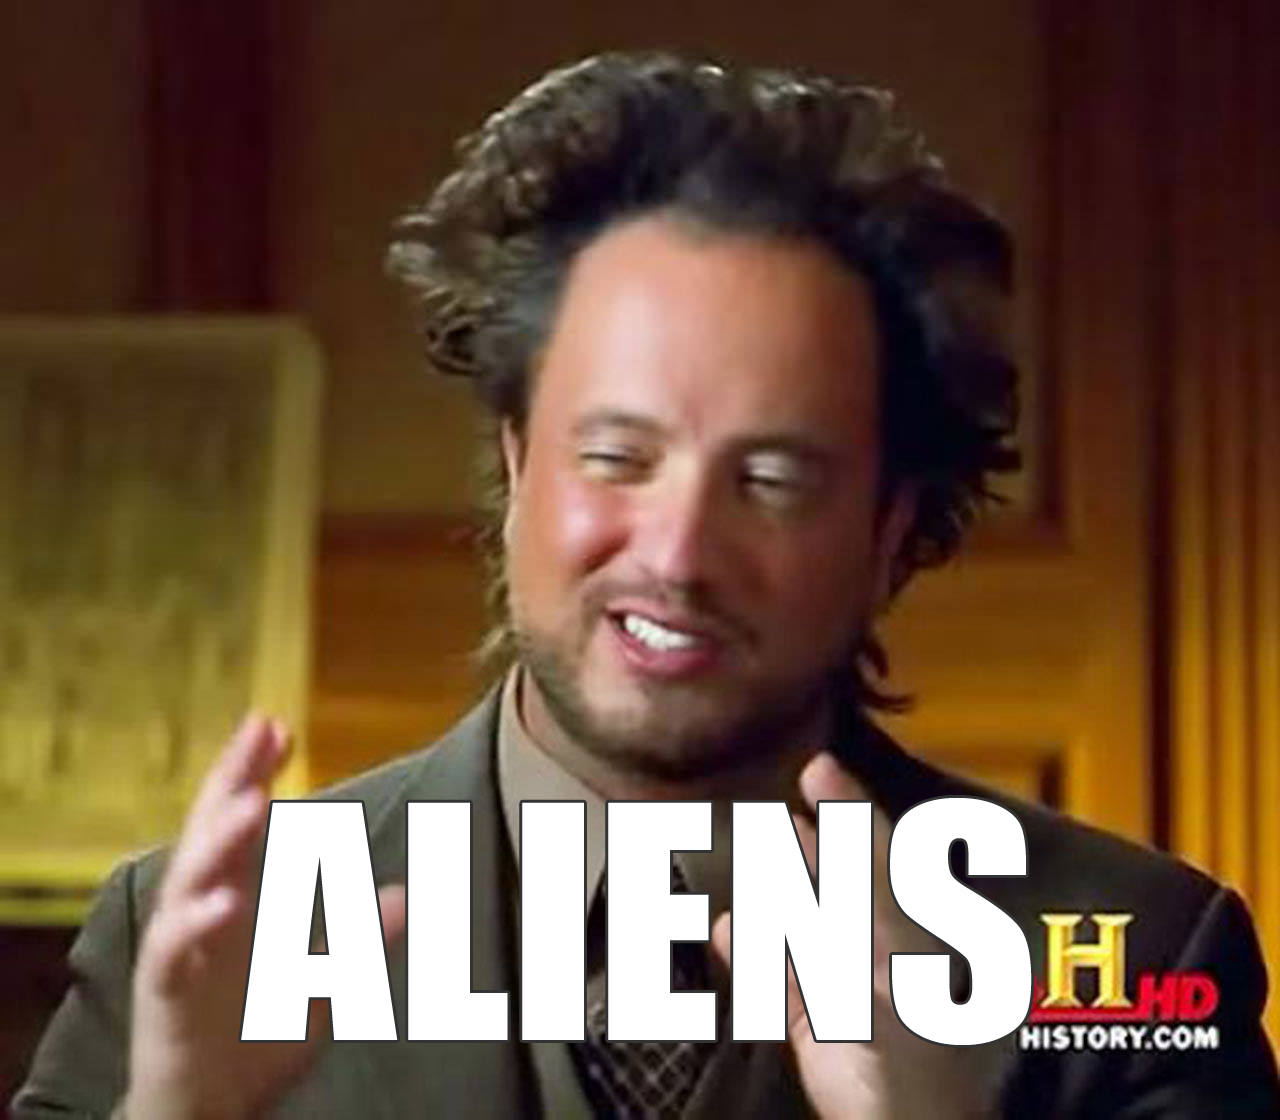 ancient-aliens-guy